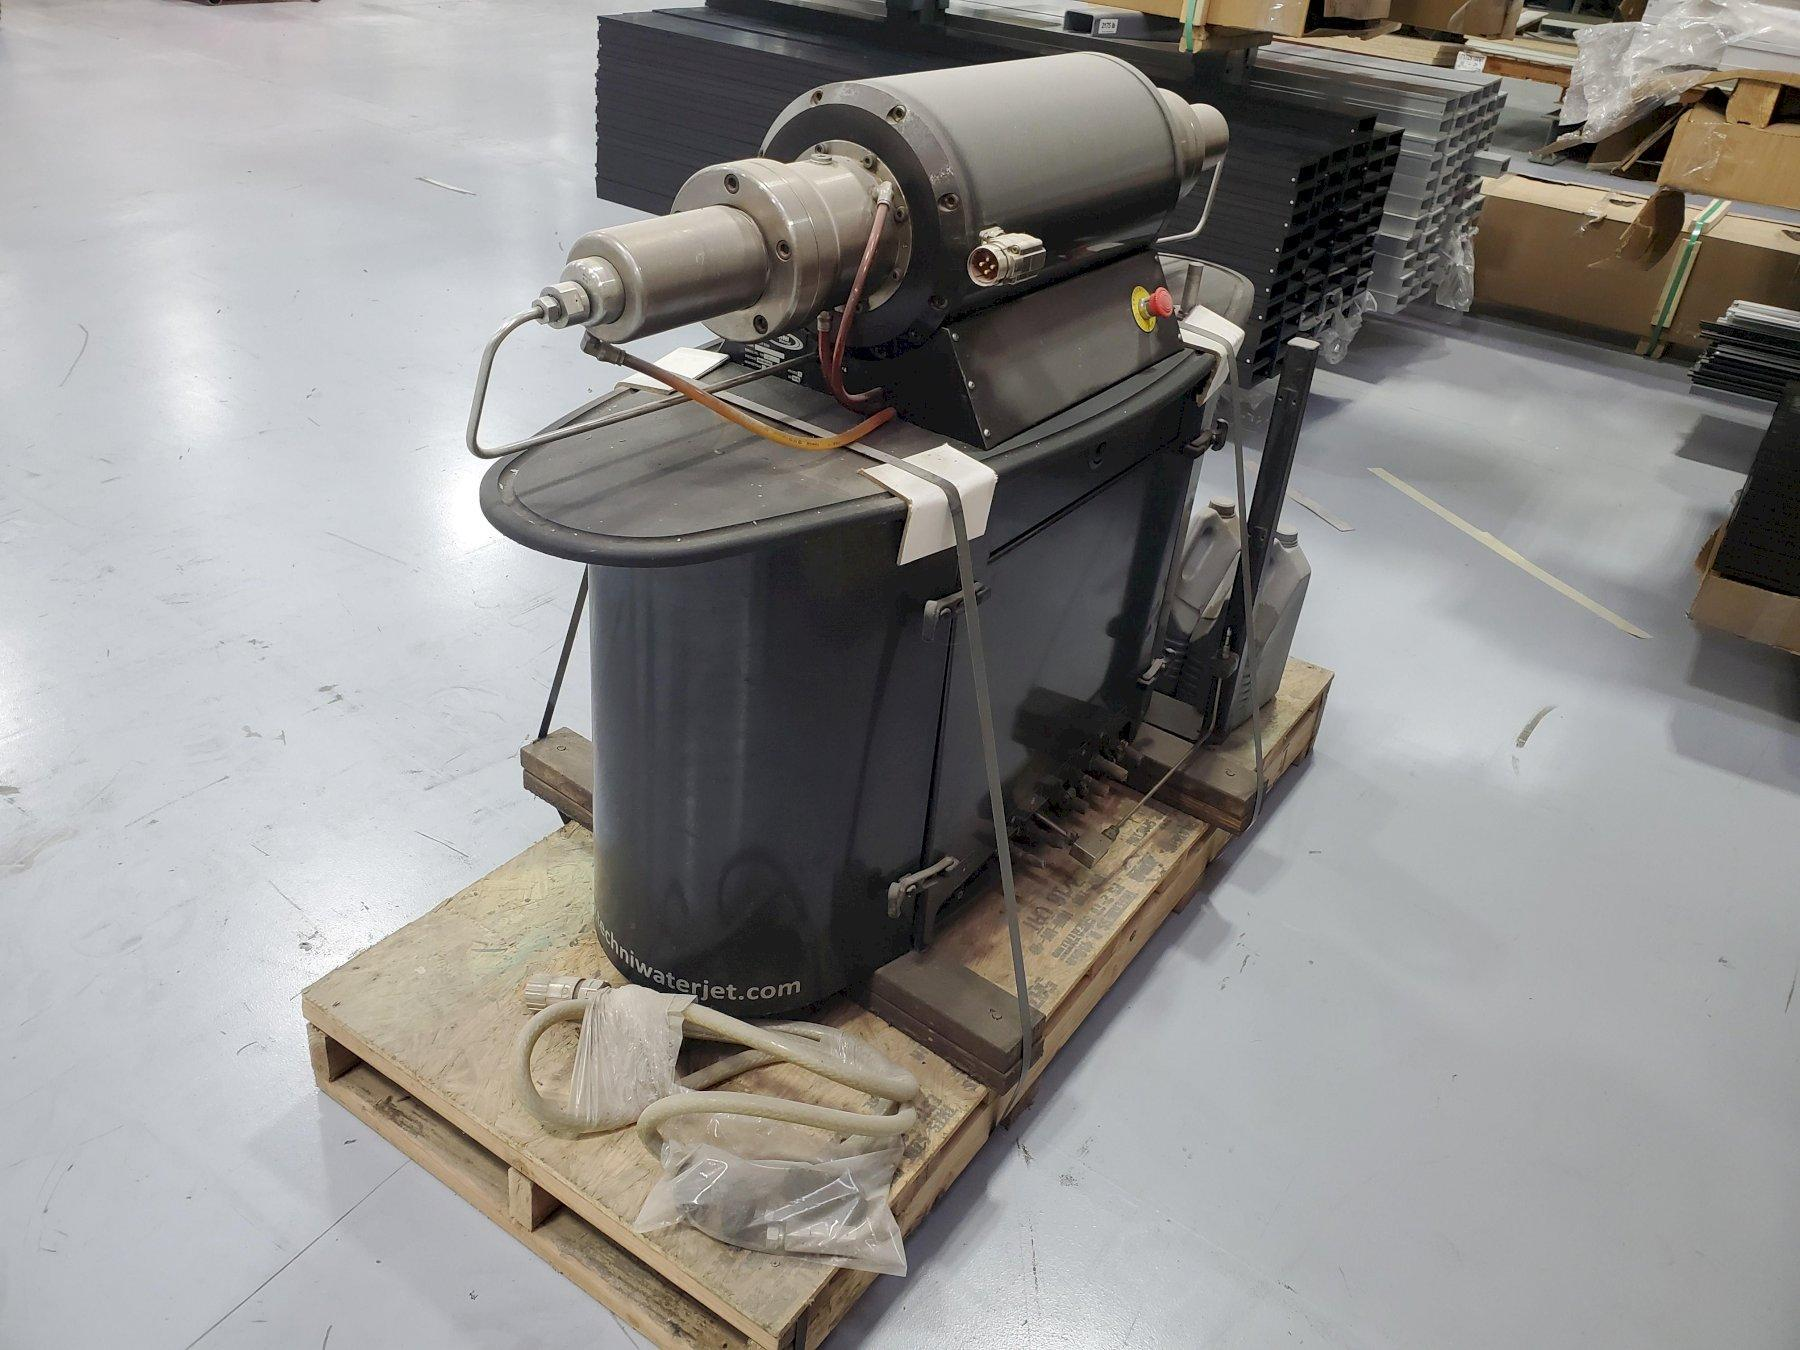 USED TECHNI MODEL ESP 55 ELECTRIC SERVO WATERJET PUMP, 55,000 PSI, Year 2010, Stock #10713